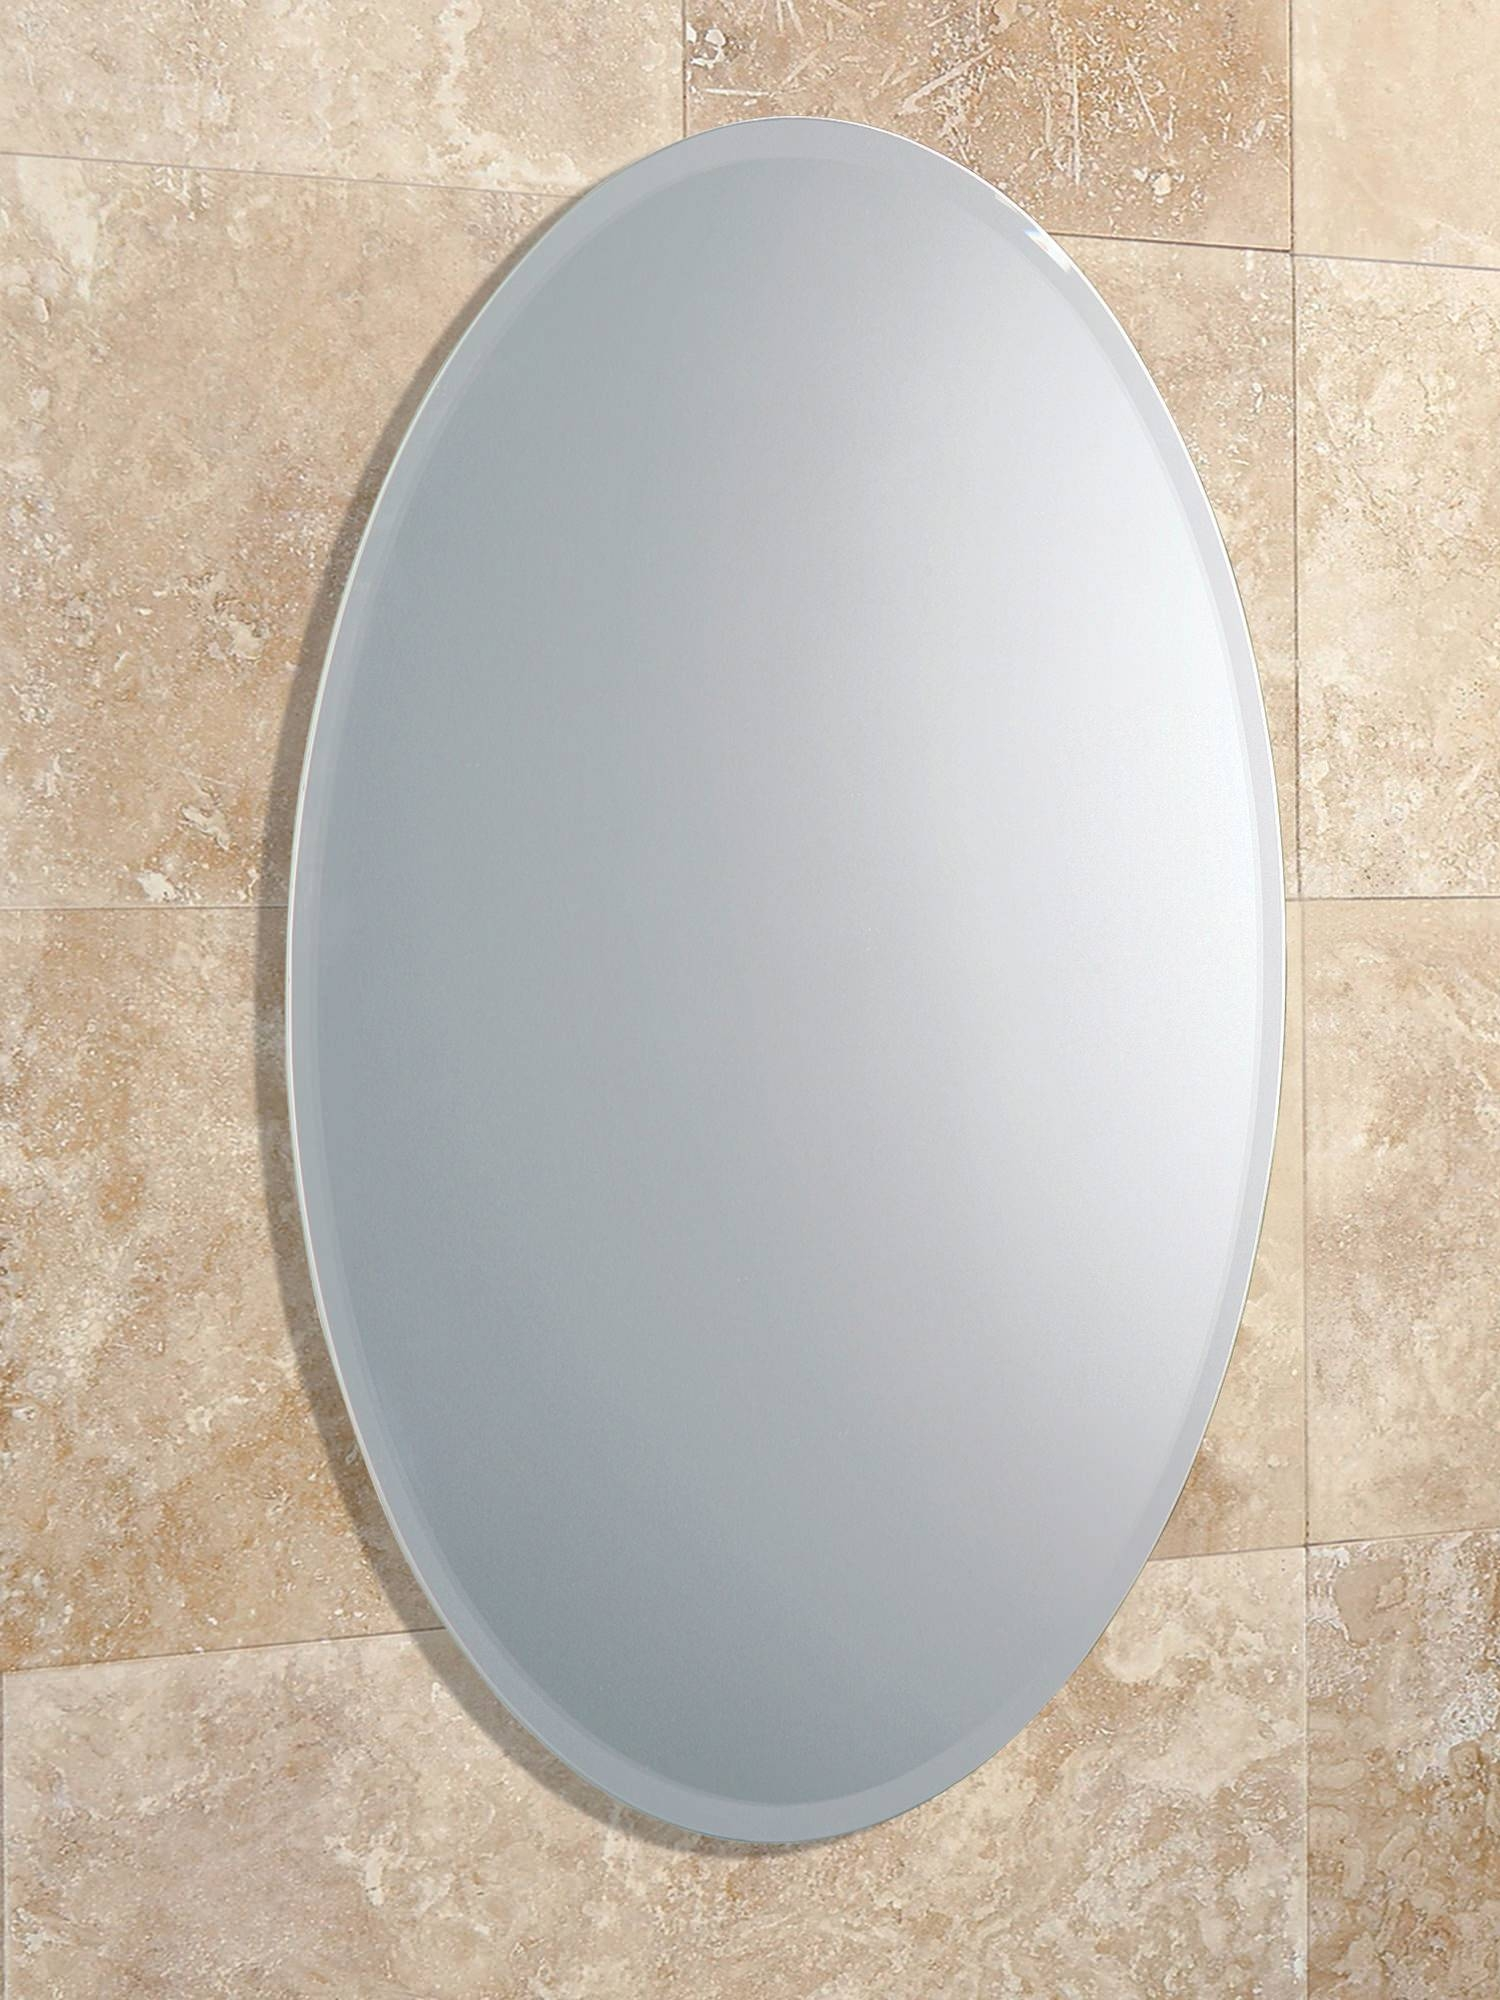 Hib Alfera Oval Shaped Mirror With Bevelled Edge | 61643000 with regard to Bevelled Oval Mirrors (Image 7 of 15)